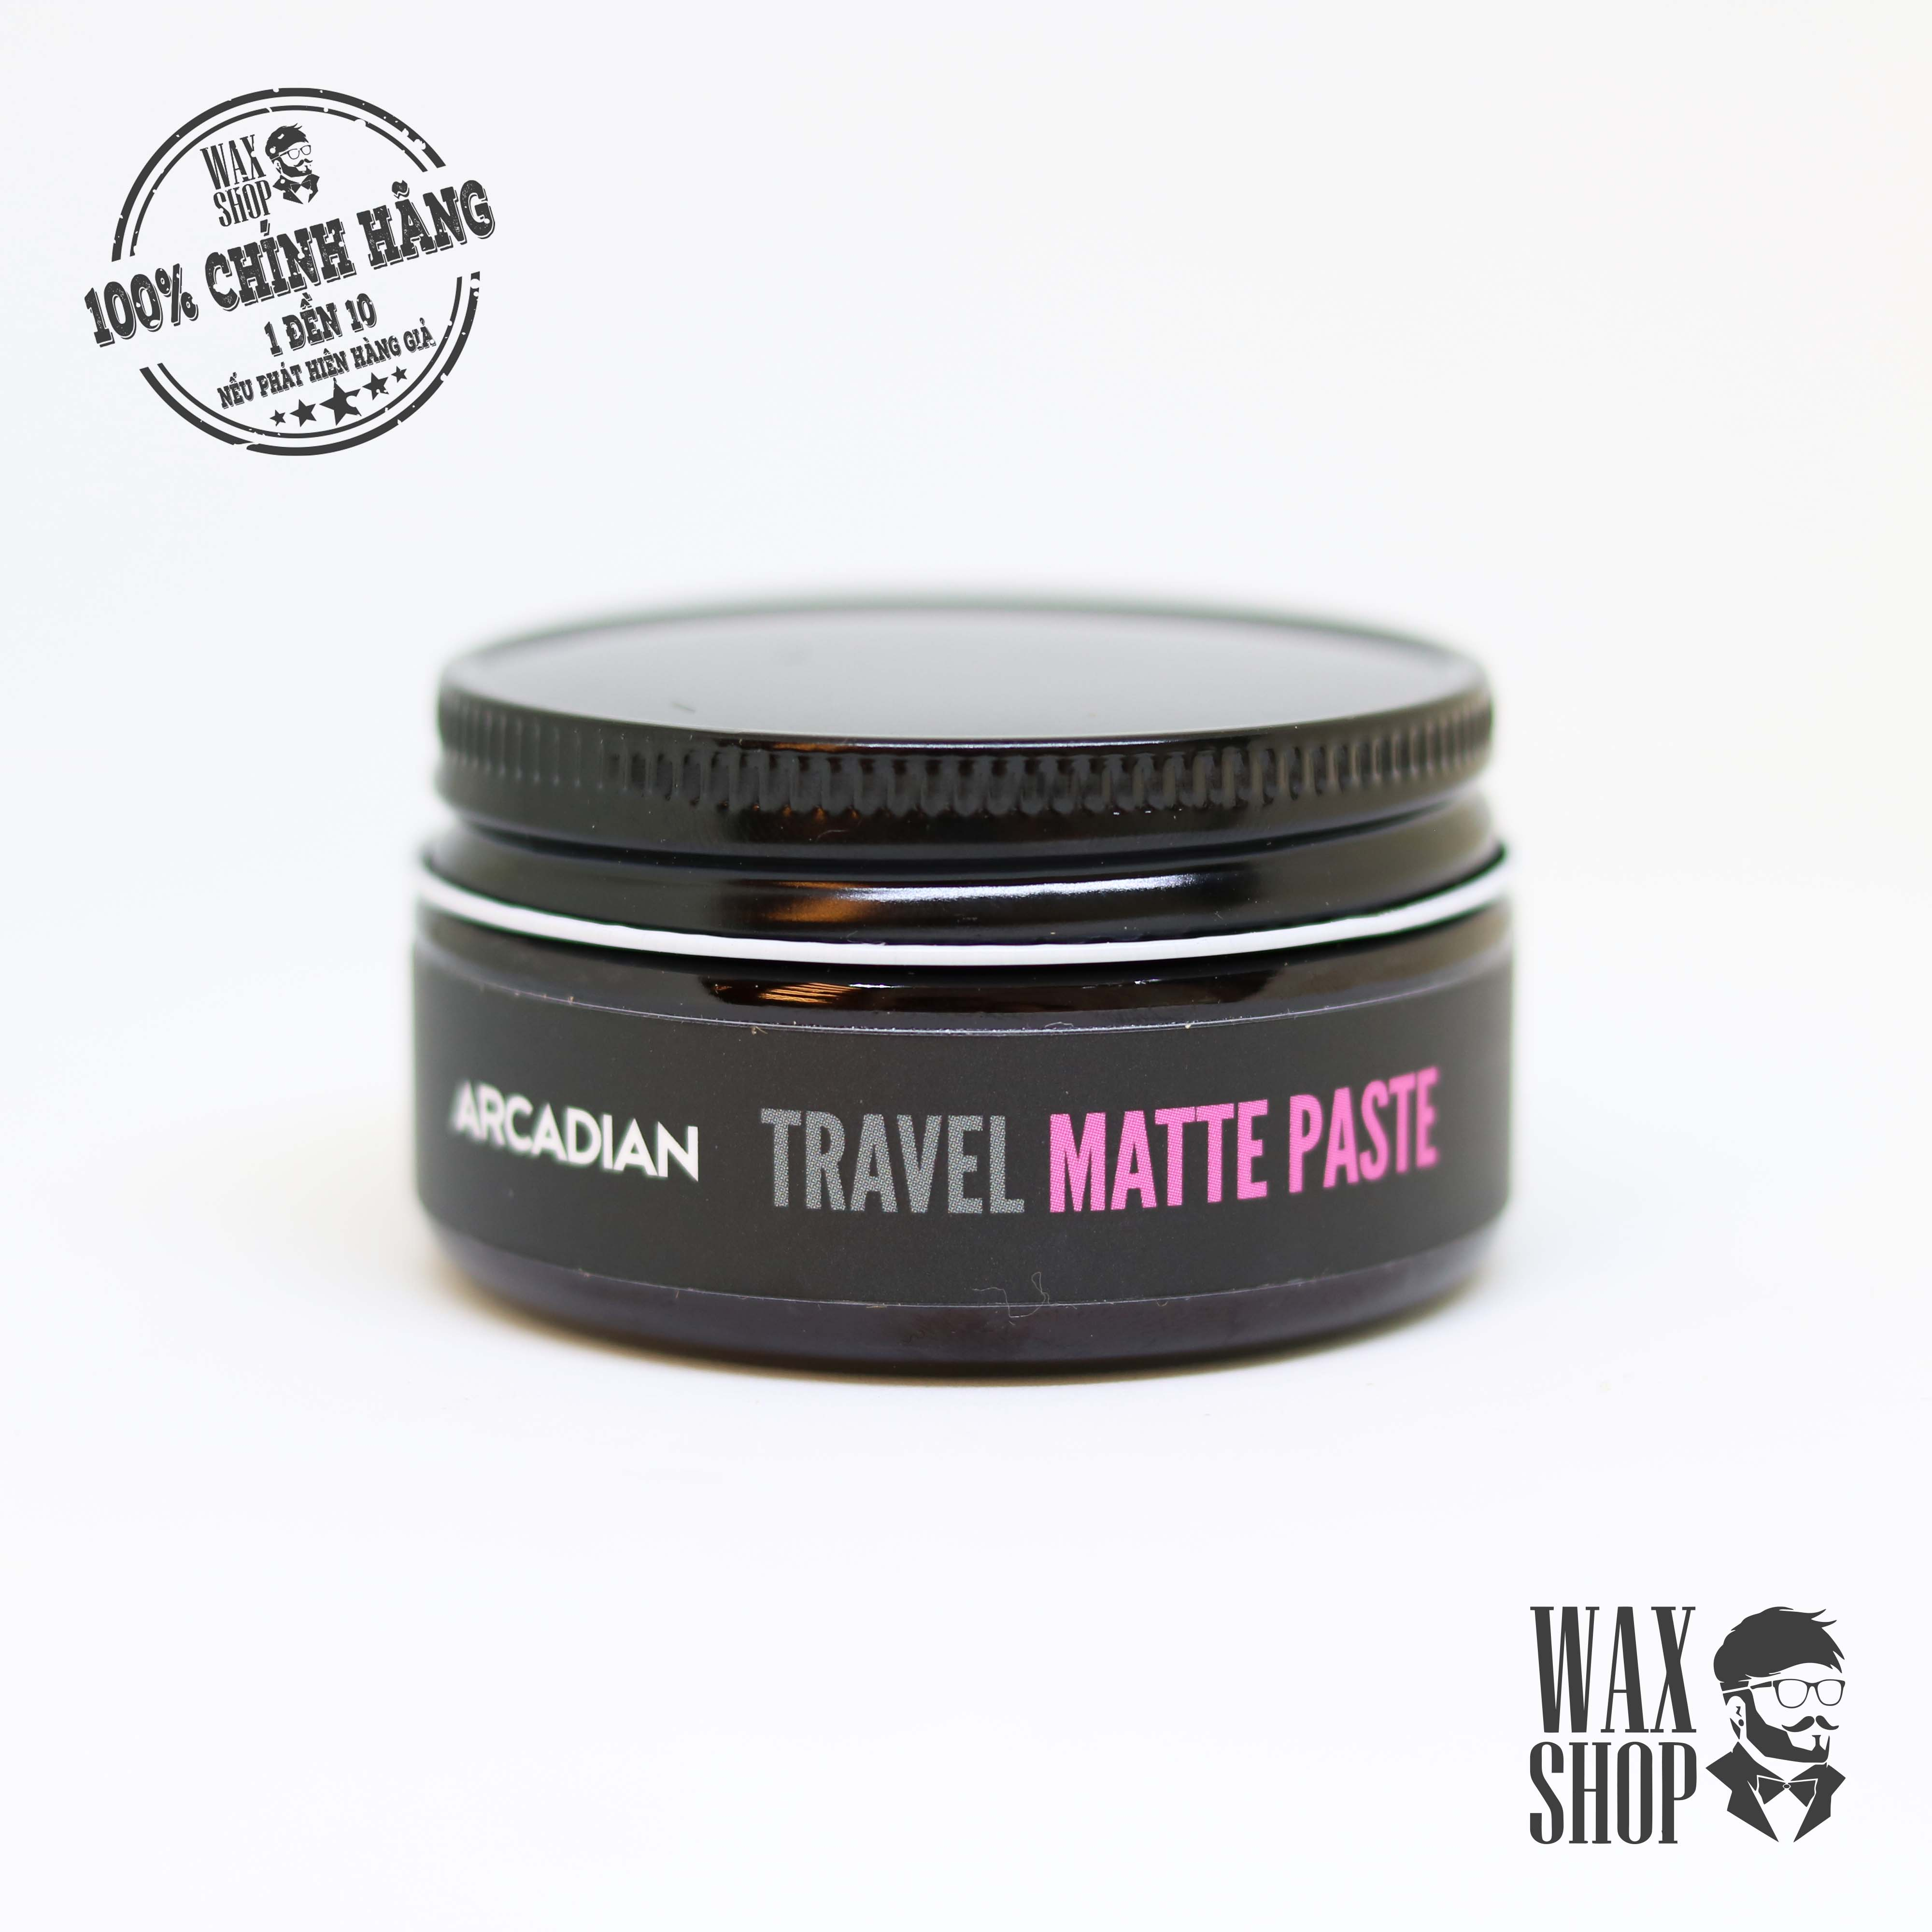 Travel Matte Paste - Arcadian